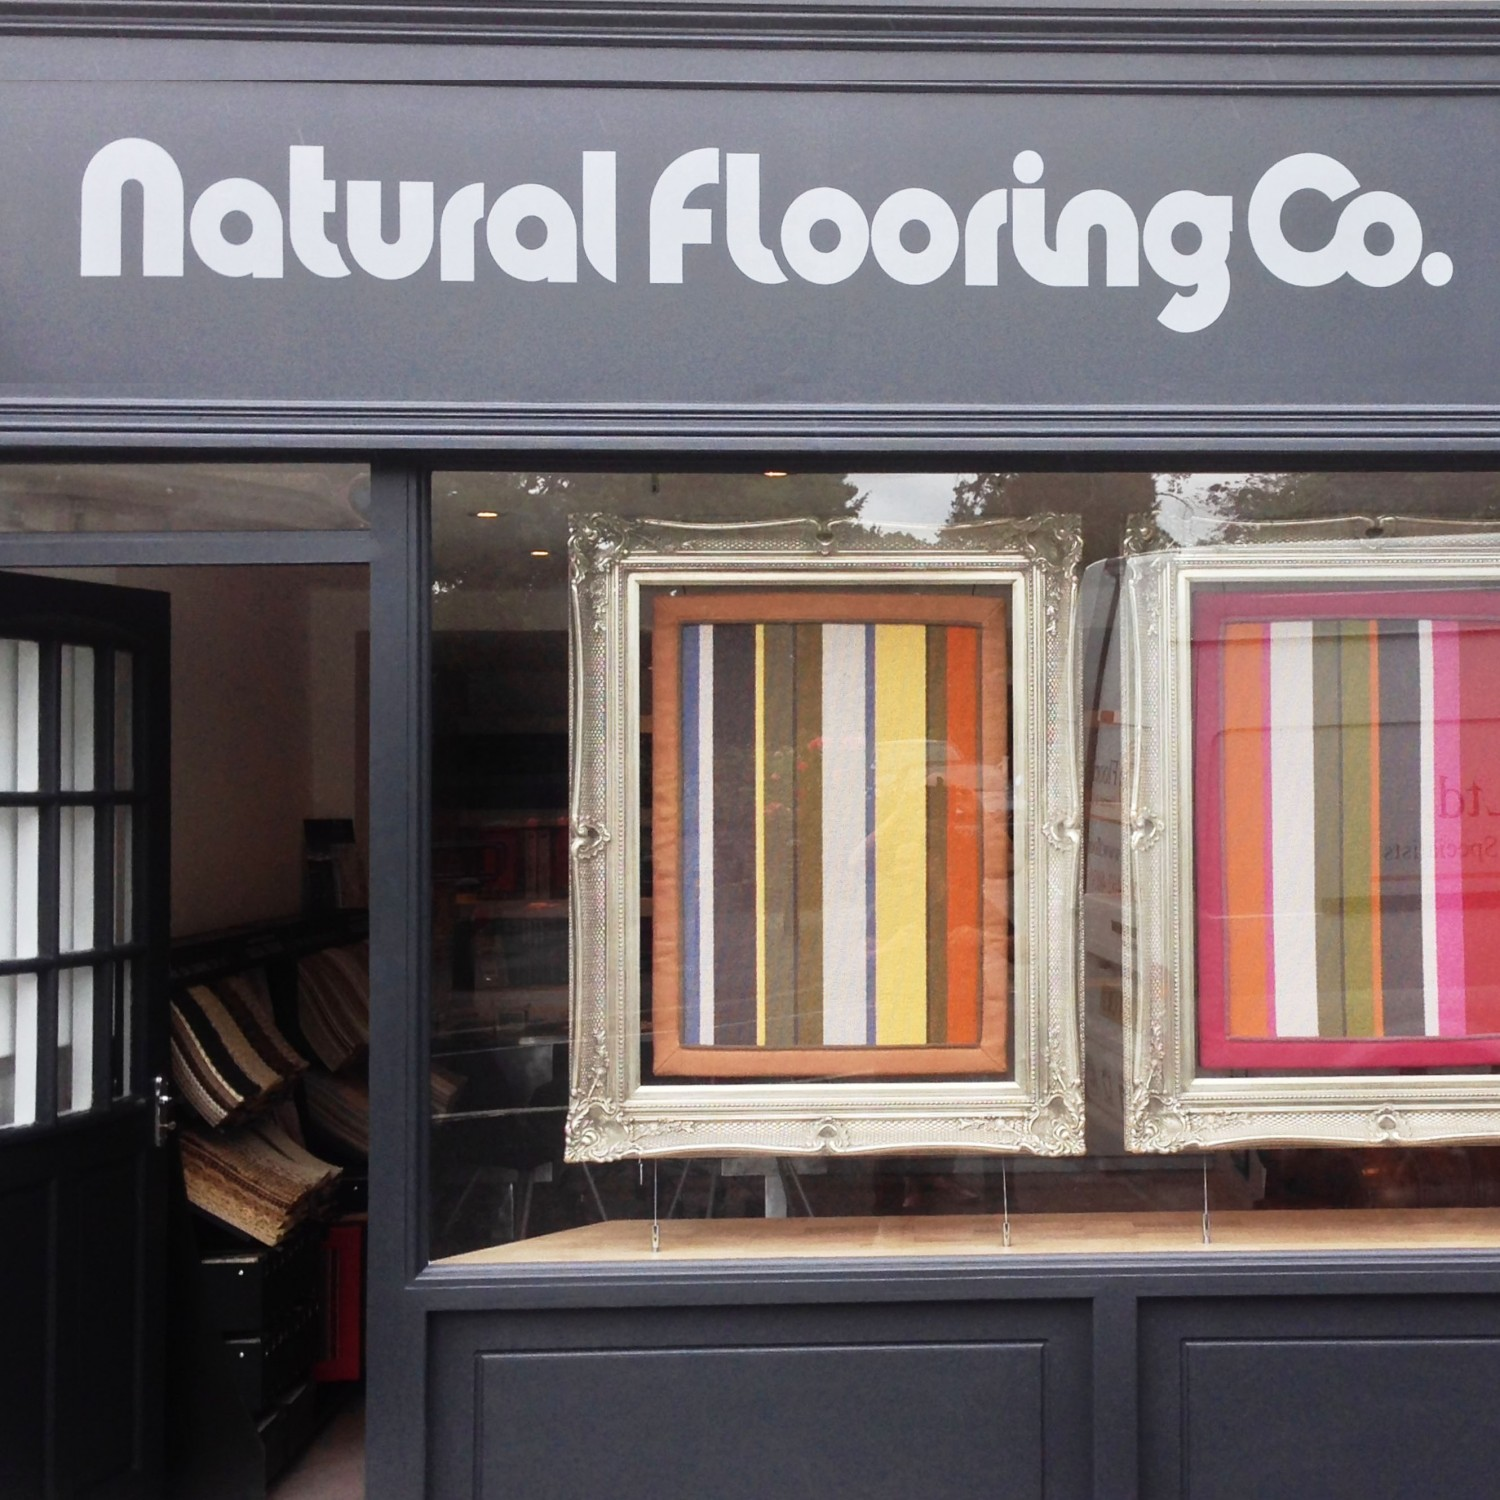 The Natural Flooring Co 413b Crofton Road, Orpington